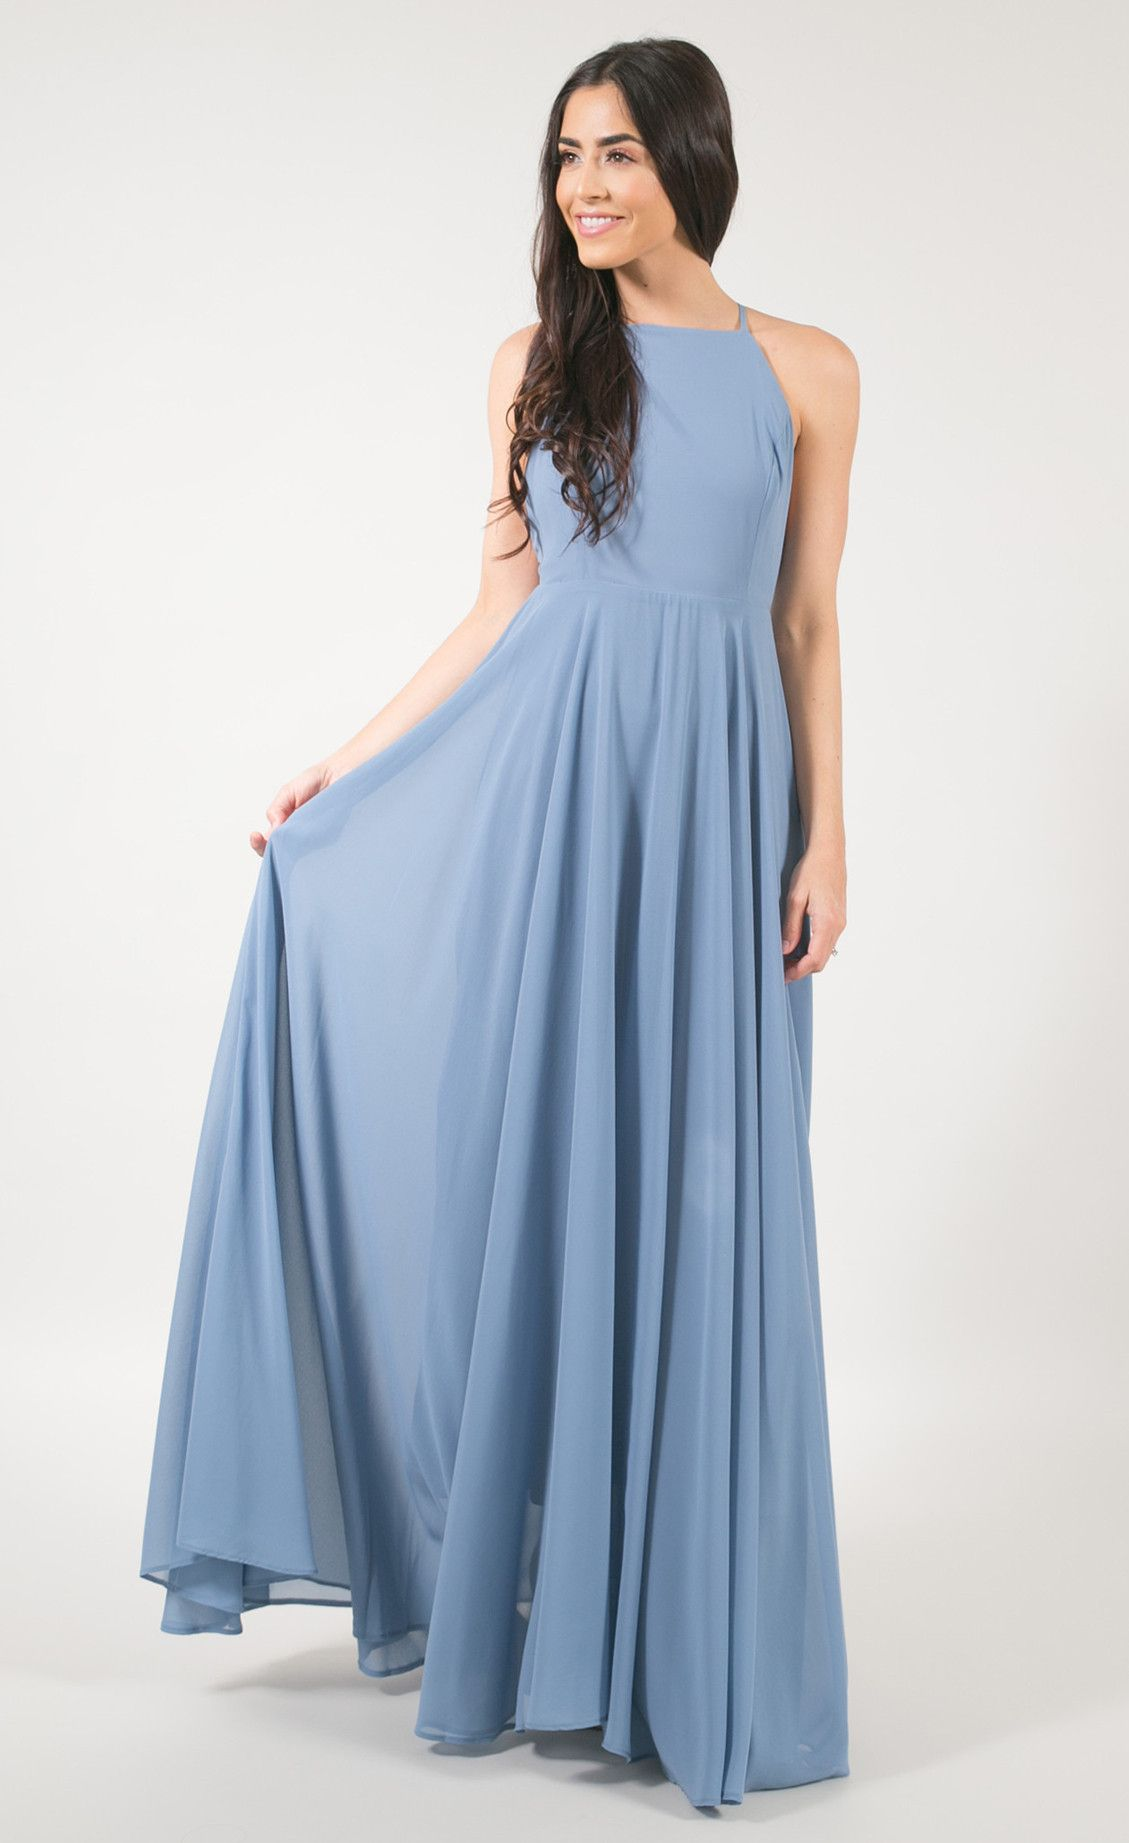 cfe998ec Reign Dusty Blue Flowy Maxi Dress - Find the perfect dress for any occasion  at ShopLuckyDuck.com